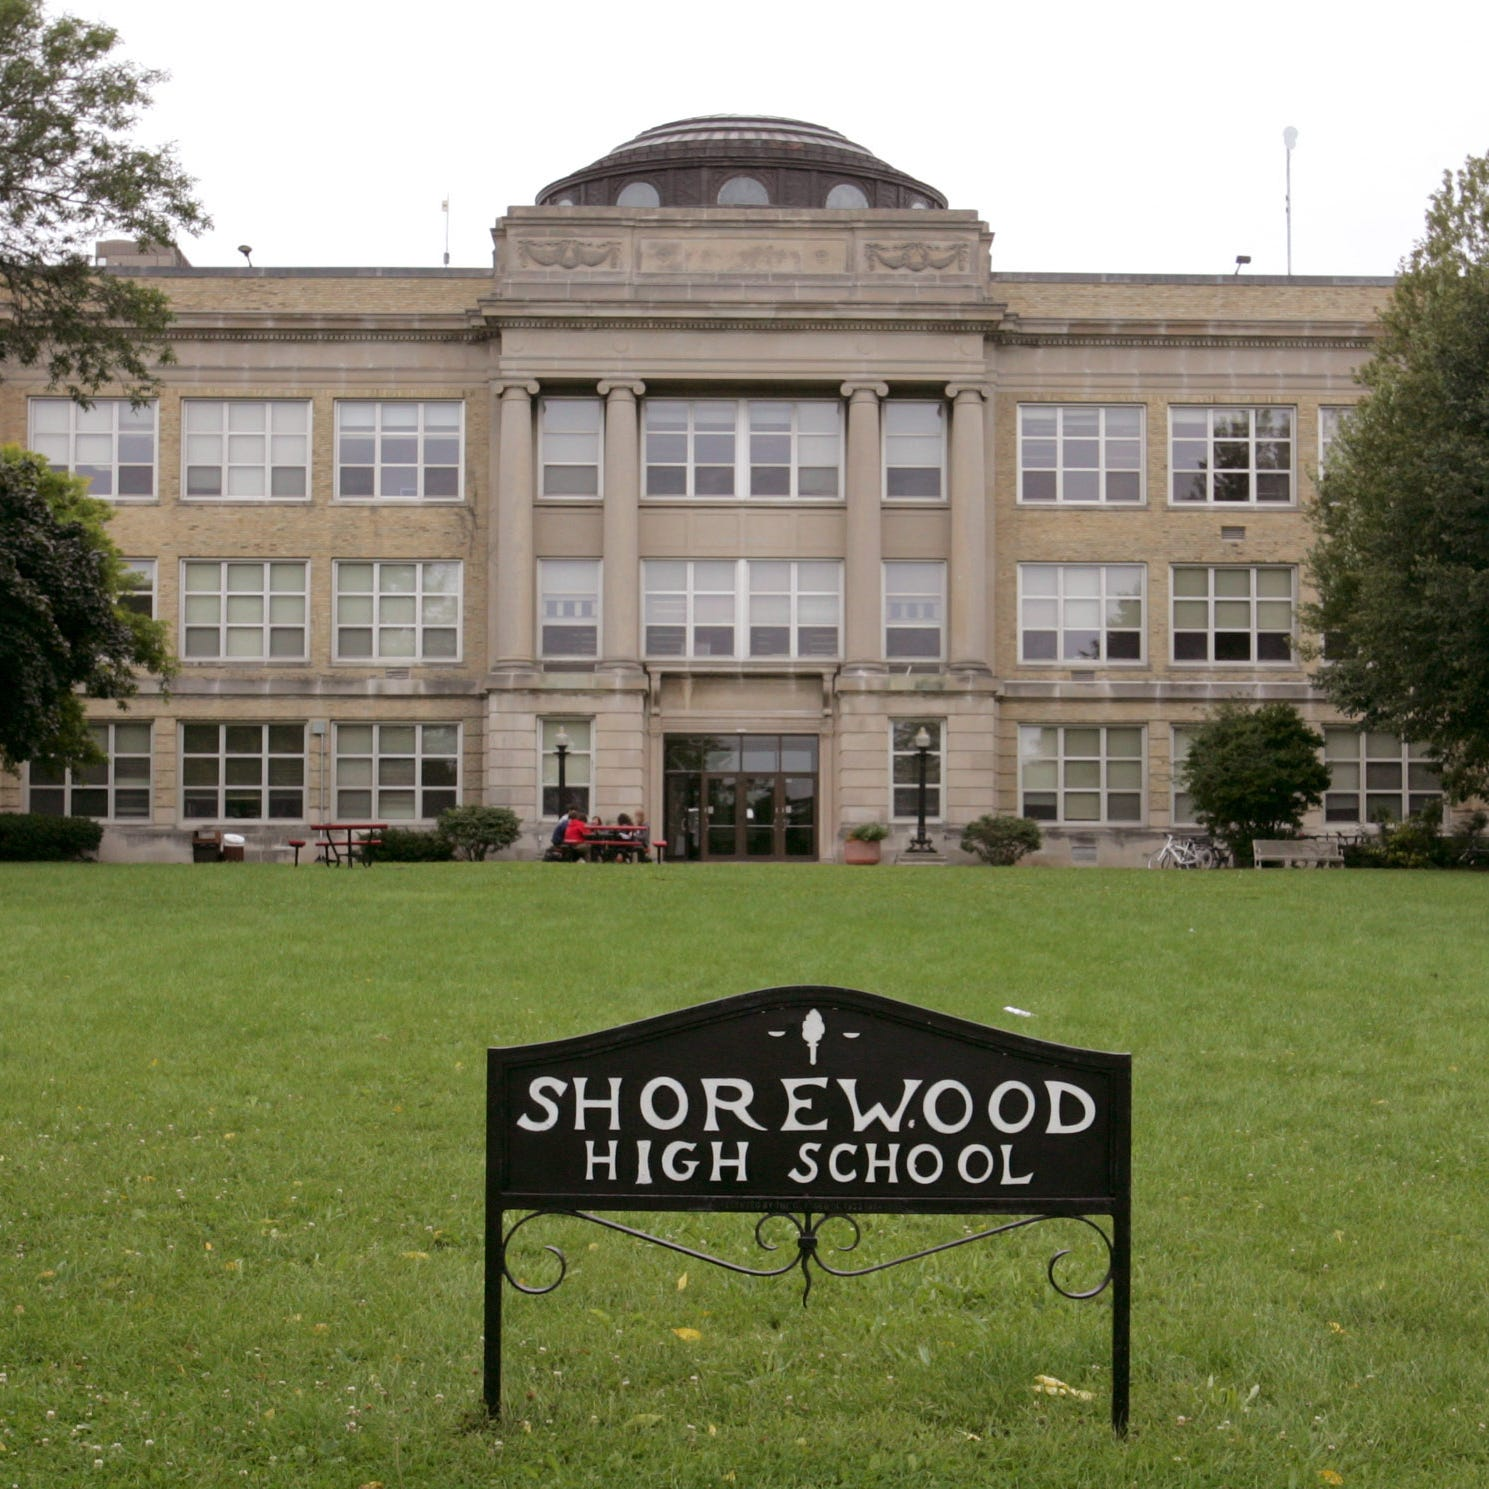 Student arrested for making threat tied to the 'To Kill a Mockingbird' play at Shorewood High School